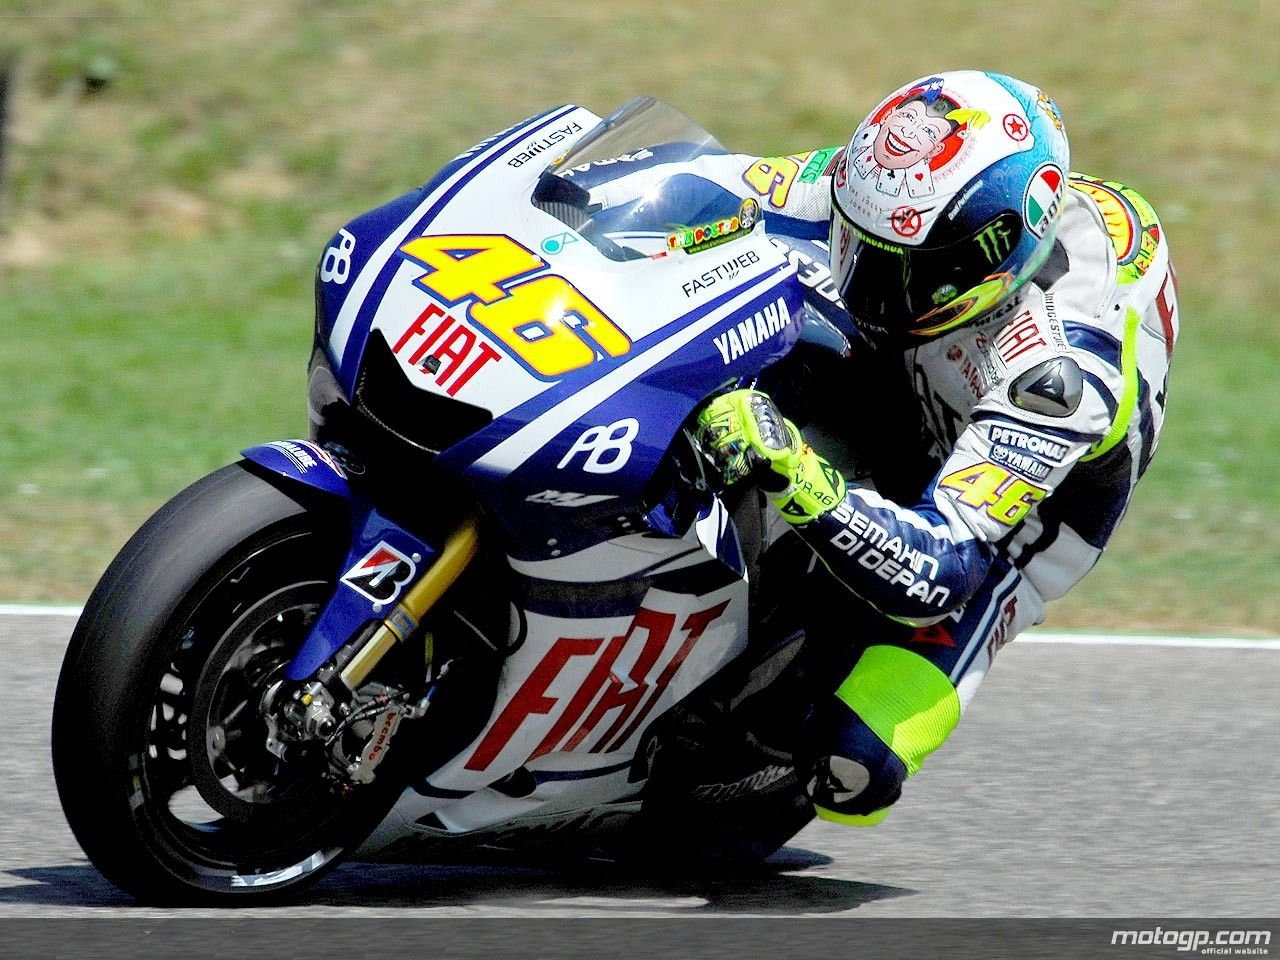 Valentino Rossi Definitely THE BEST Moto Biker Ever Seen On Earth